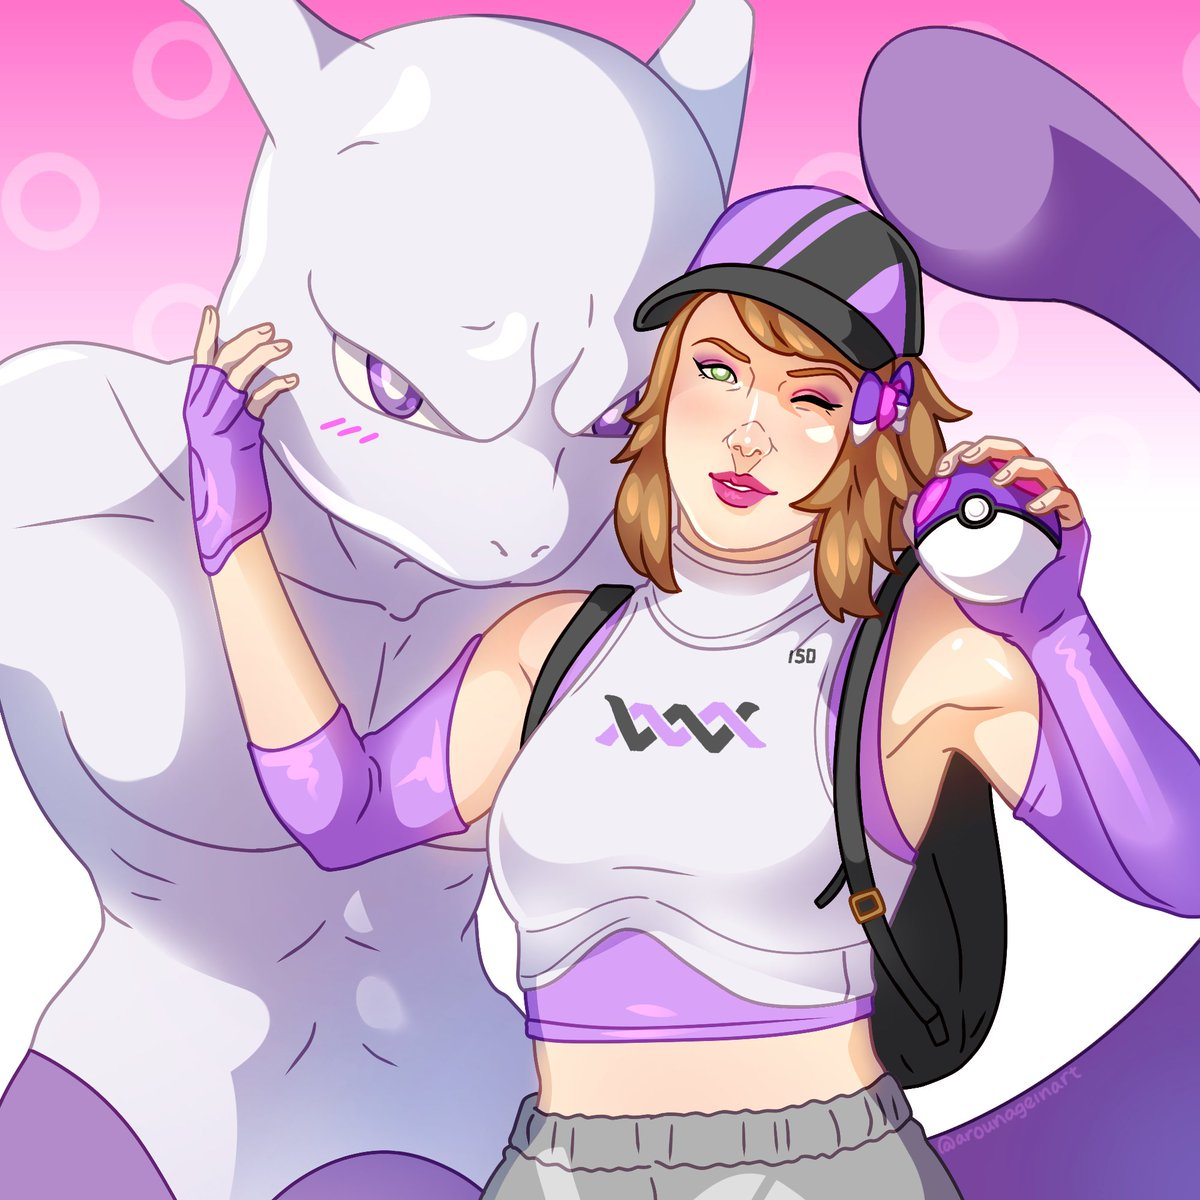 My dear friend @arounageinart made my dreams come true 😭💜 ever since I was a kid I've dreamed of being a Pokemon trainer and hanging out with my fave, the OG Legendary Mewtwo. Here's me in my Pokemon Go attire! Gotta coordinate with your buddy 💜 #Pokemon25 #PokemonGO